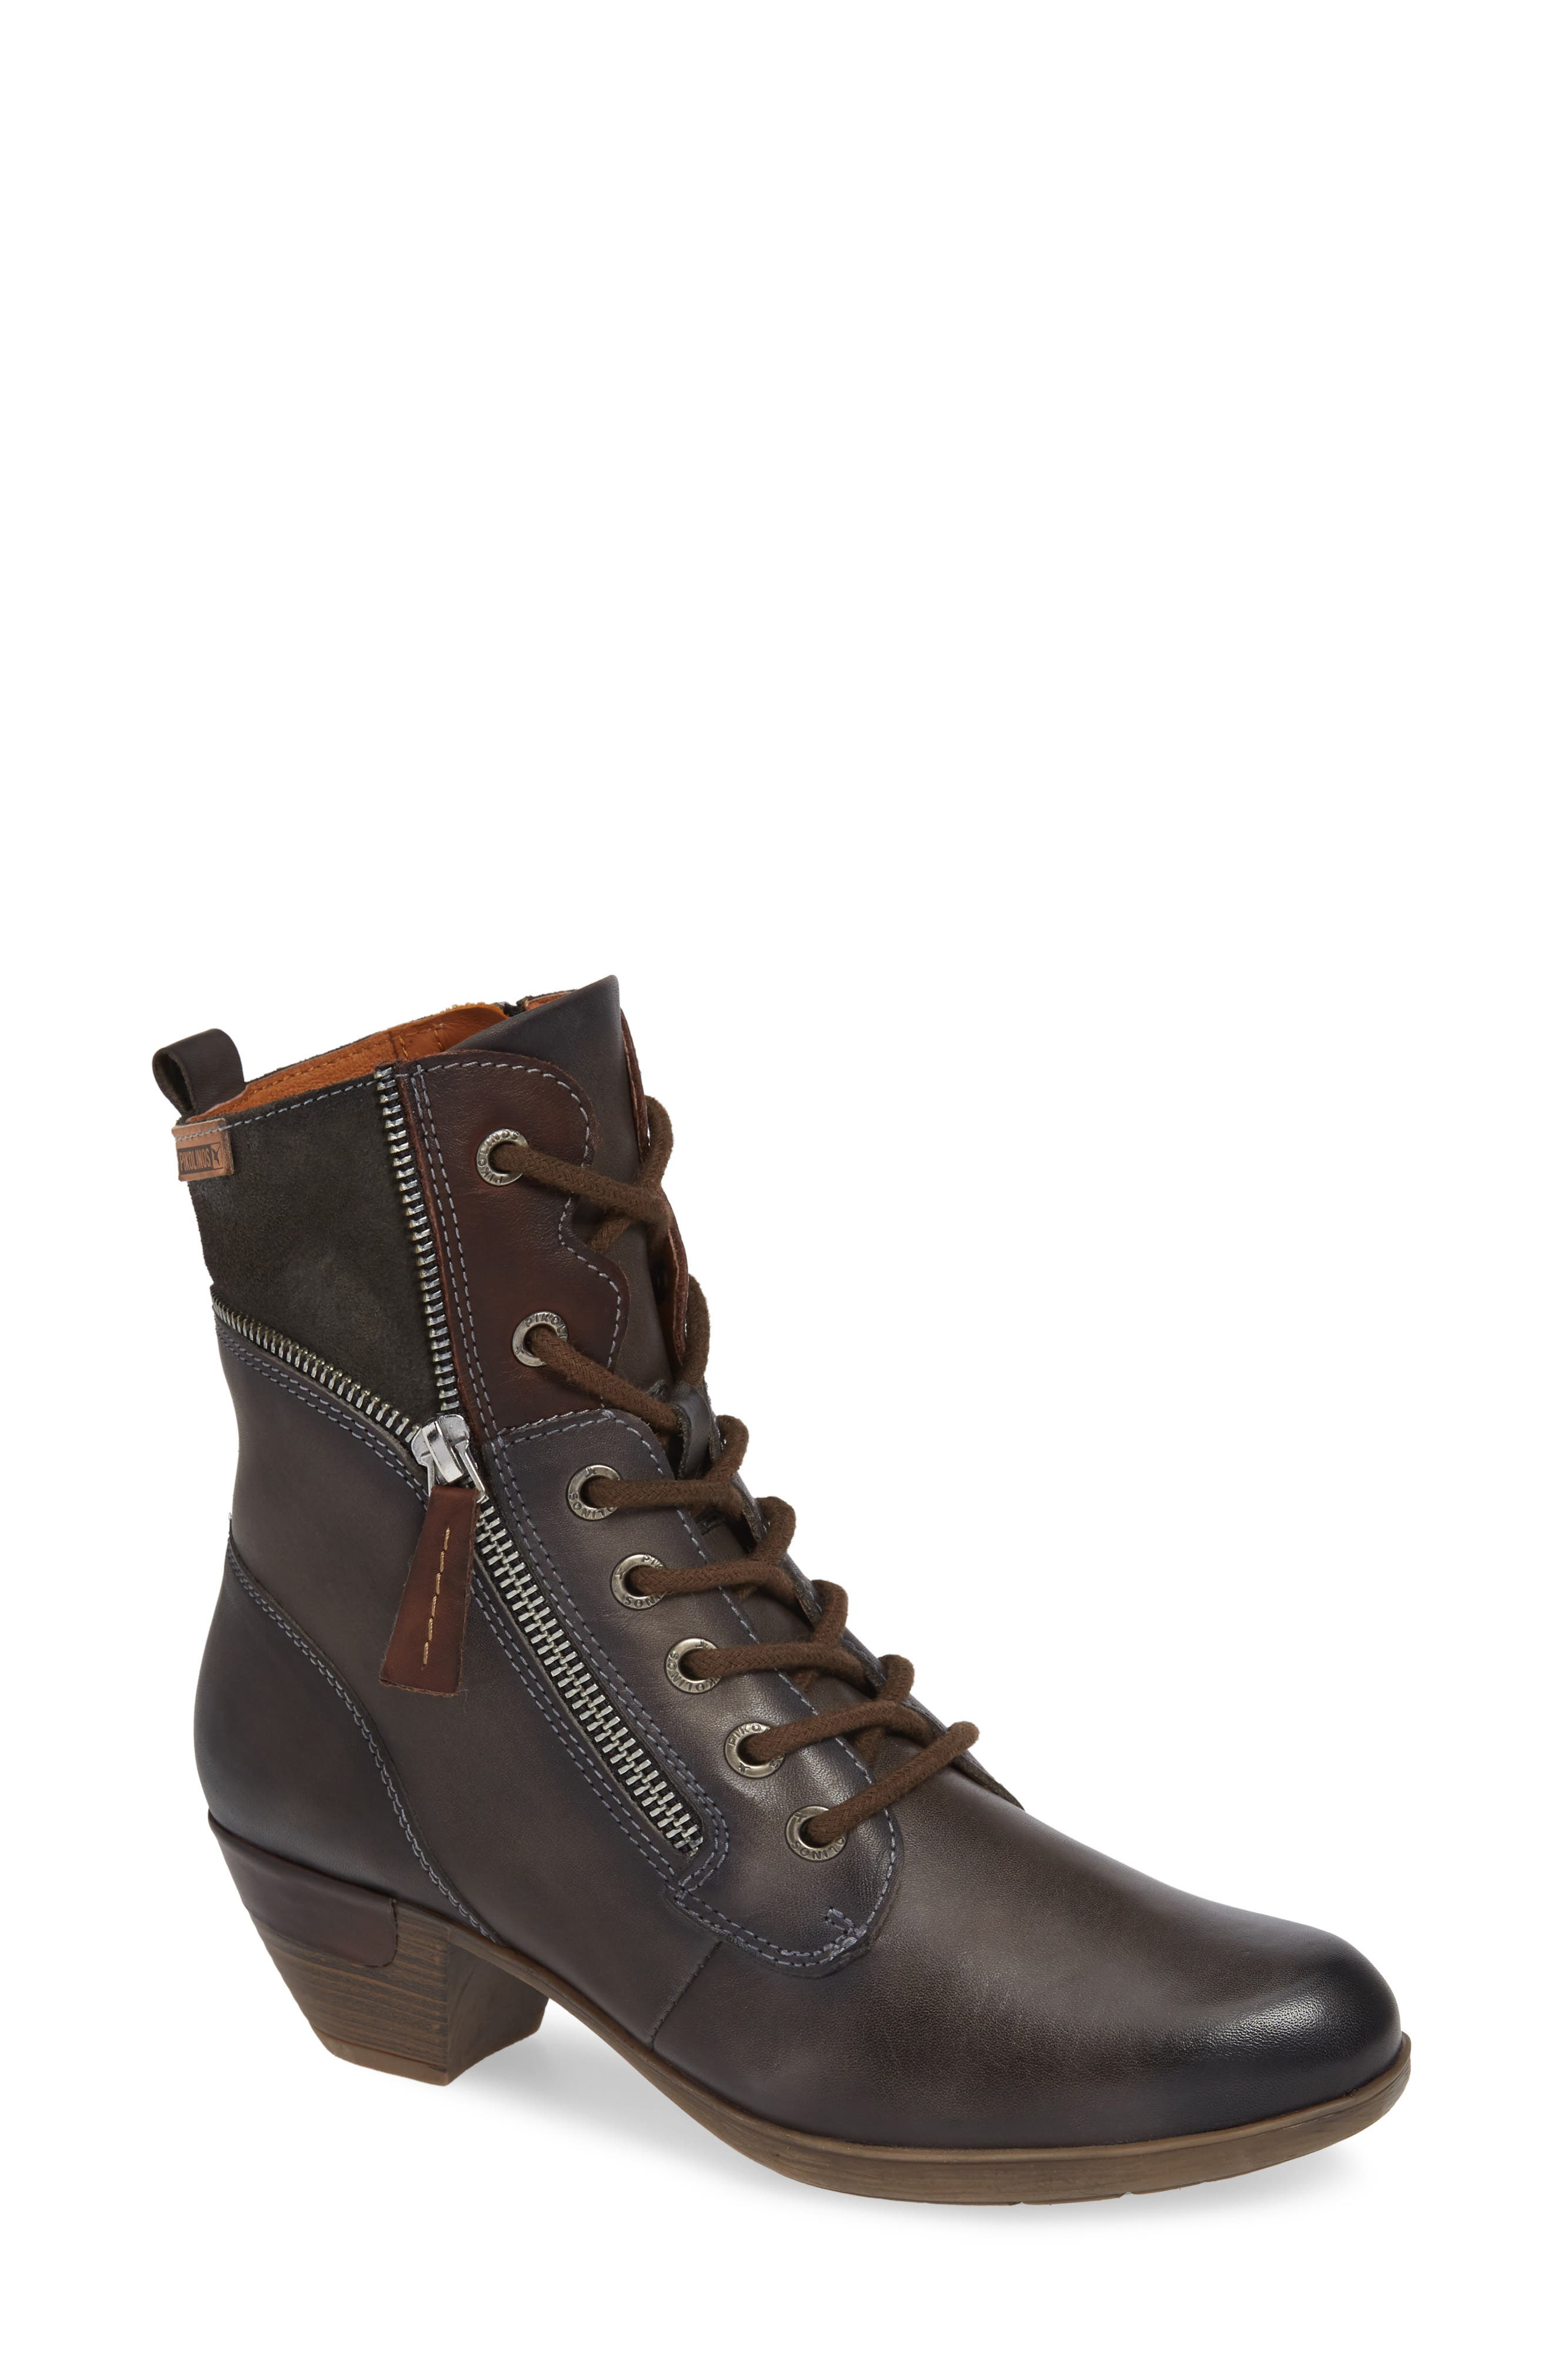 Rotterdam Bootie,                         Main,                         color, LEAD LEATHER